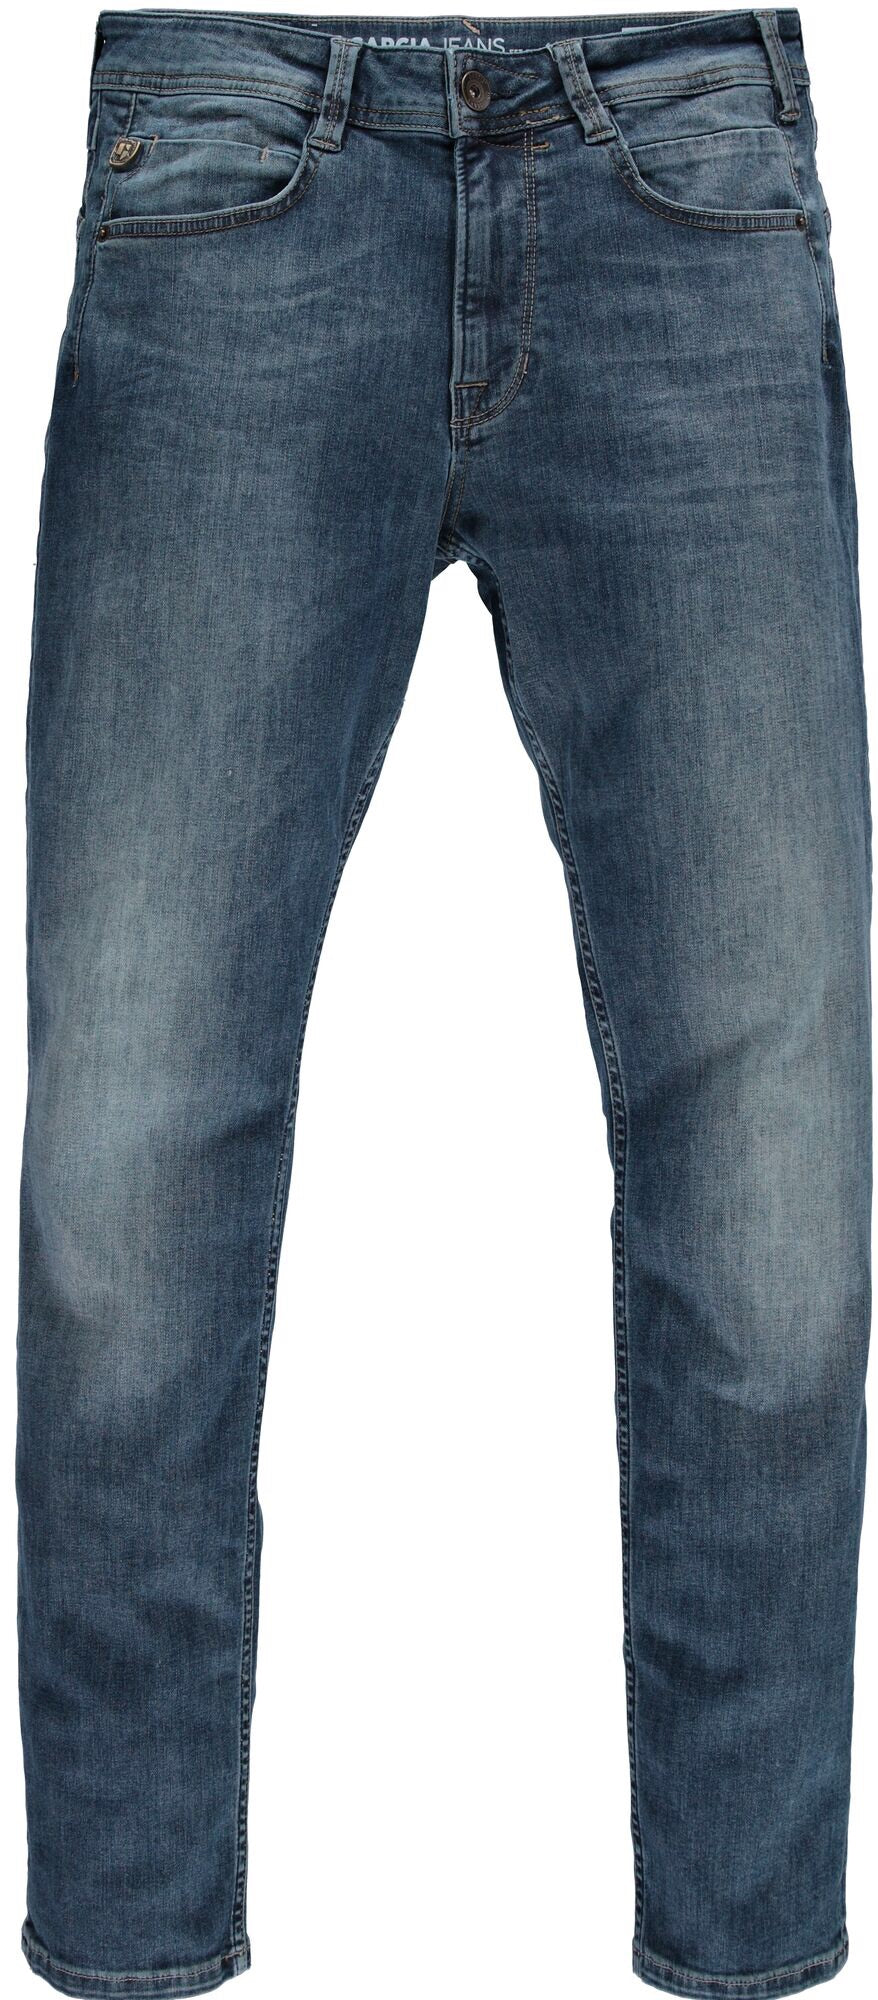 Garcia Men's Rocko Dark Used Jeans